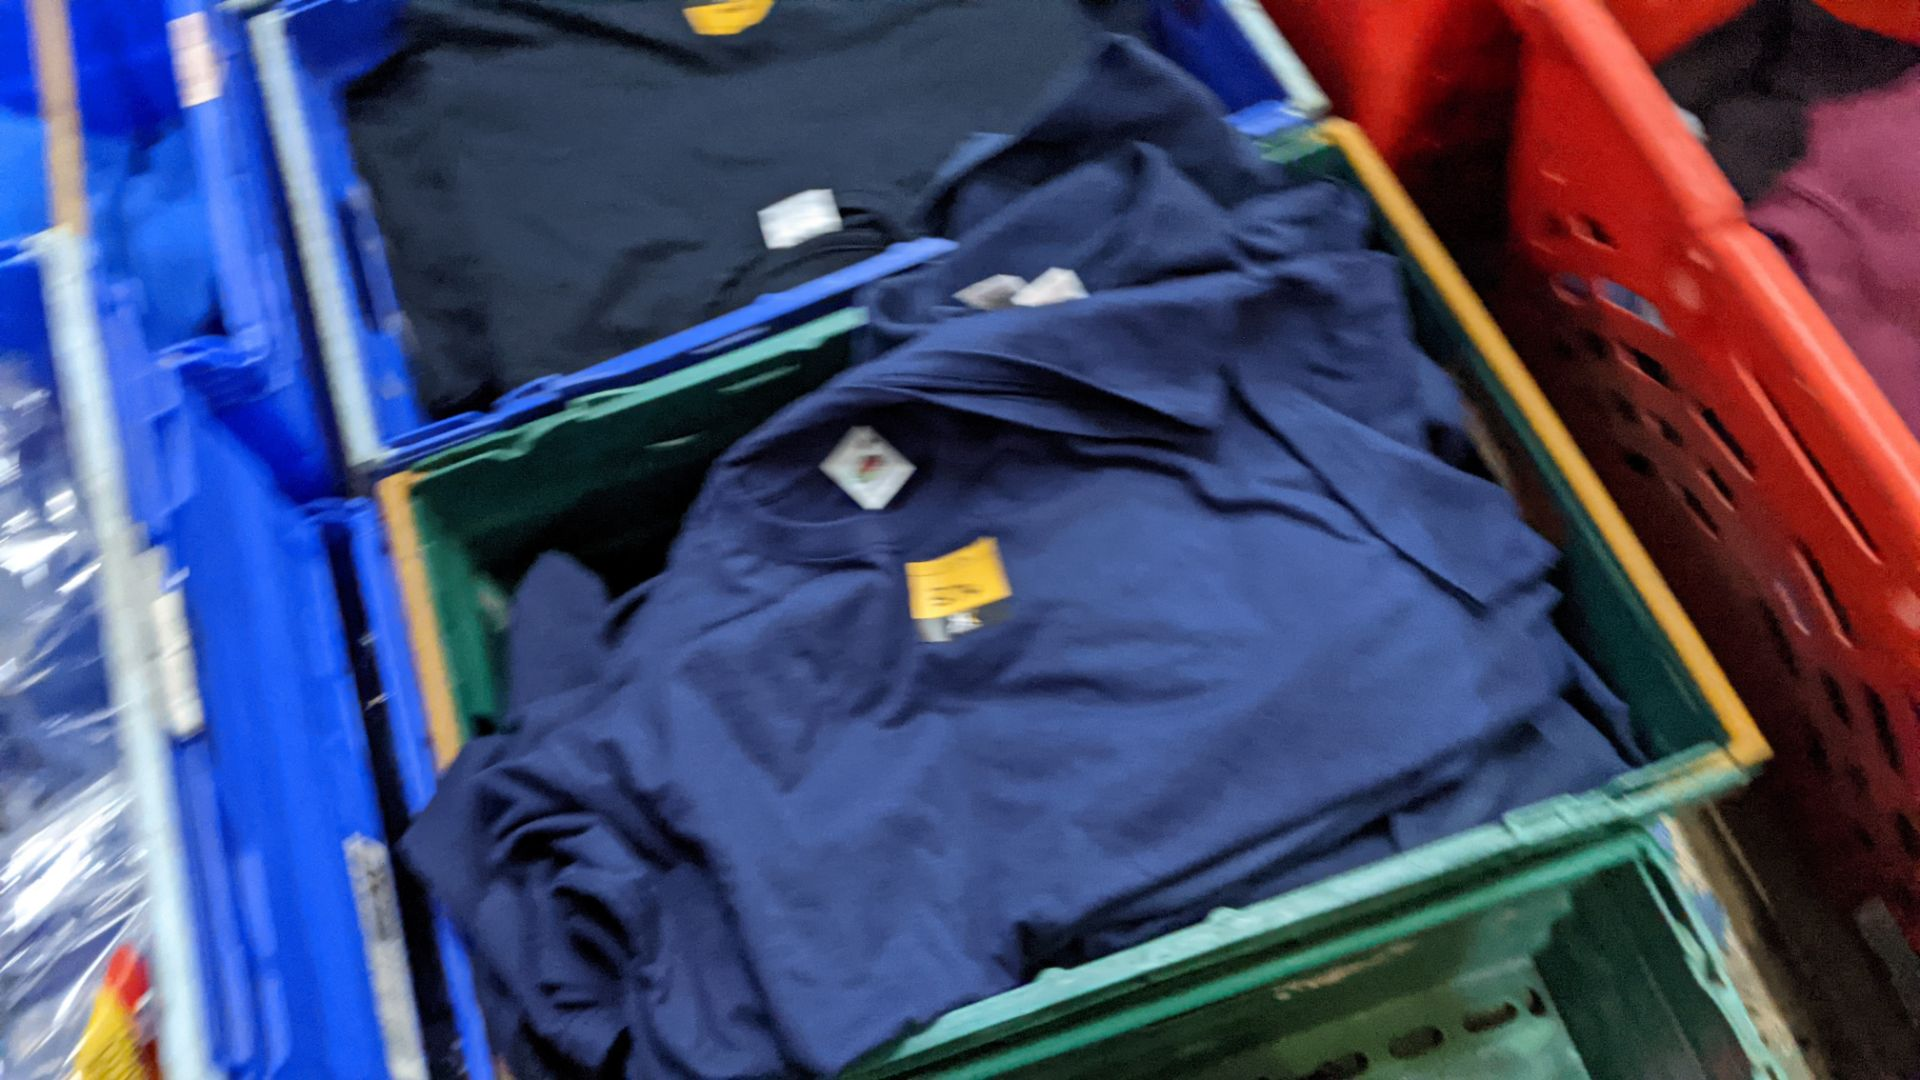 Approx 20 off assorted blue Fruit of the Loom tops comprising sweatshirts, polo shirts & t-shirts - Image 4 of 4